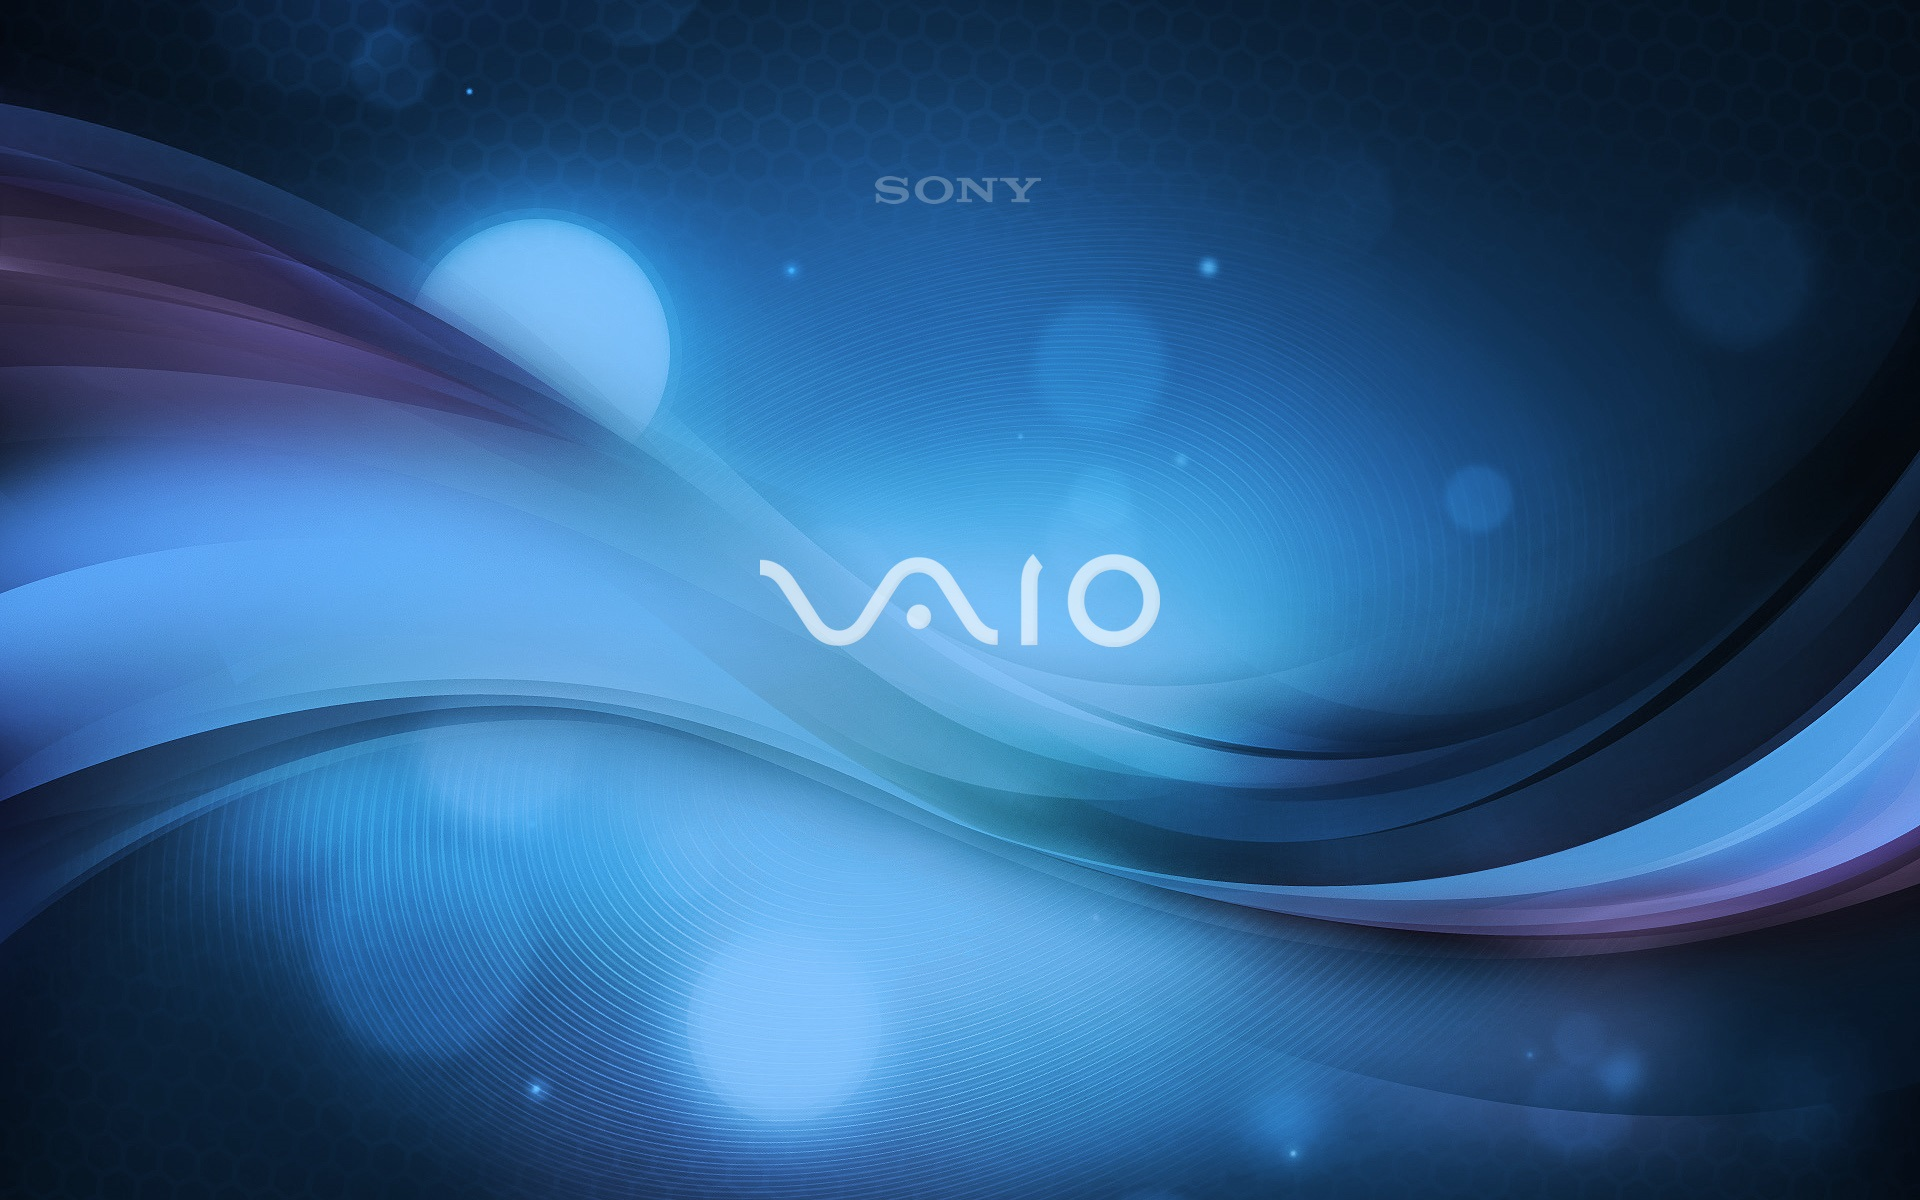 Wallpaper sony vaio logo blue abstract background 1920x1200 hd picture image - Sony vaio wallpaper 1280x800 ...